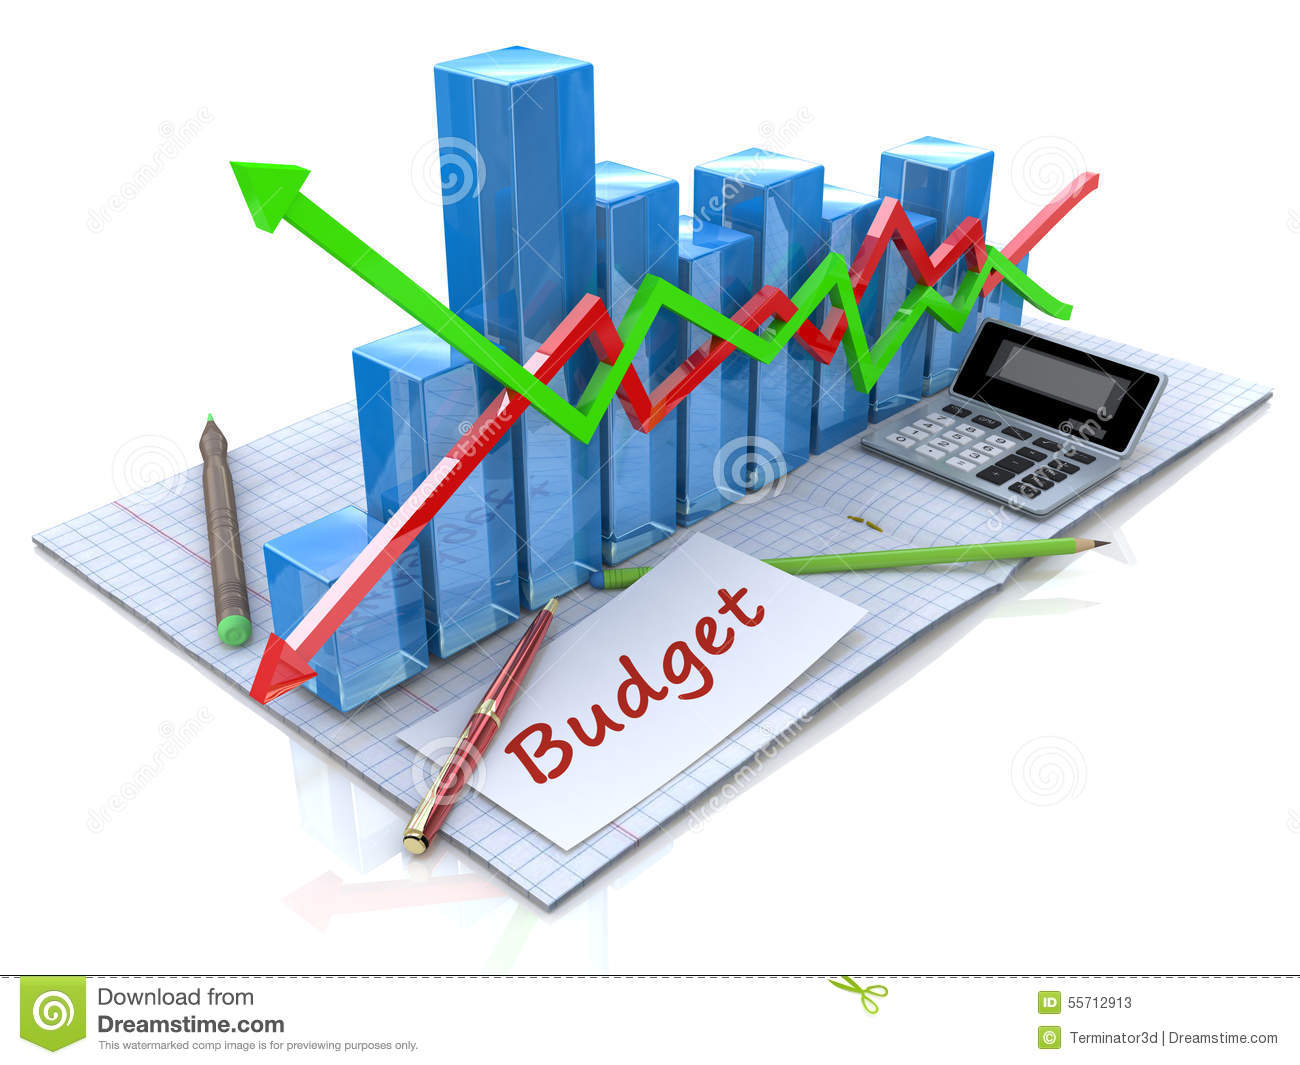 an analysis of the budgeting in management accounting Division: management accounting, spring 2010 authors: rebecca   furthermore, analysing if the principles of beyond budgeting concept are  implemented in a.